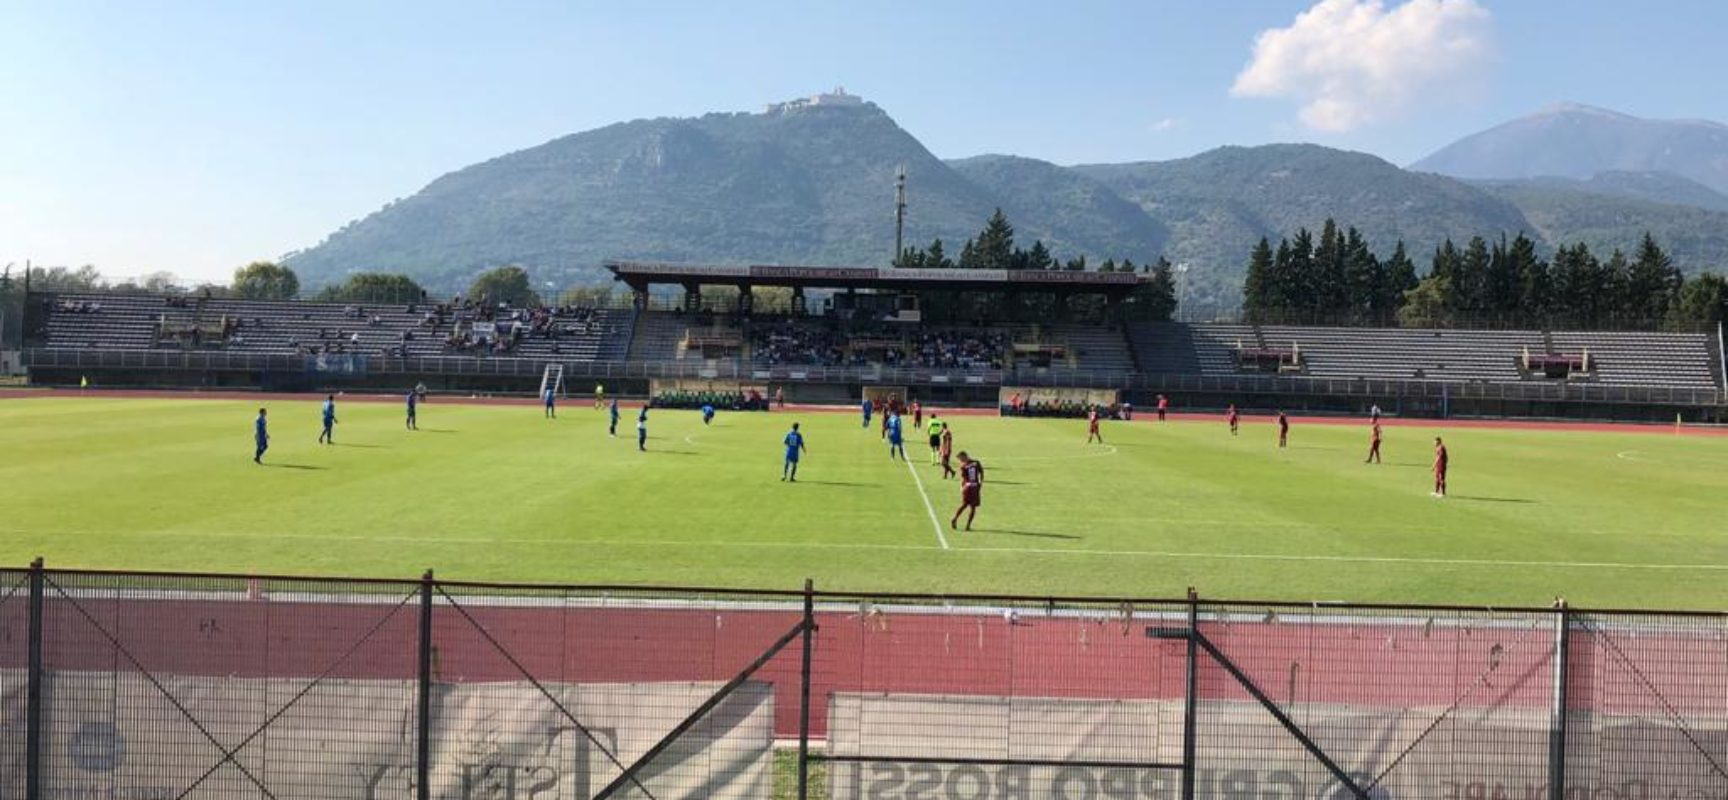 Termina in parità il big match allo Stadio Salveti: Cassino-Trastevere 2-2